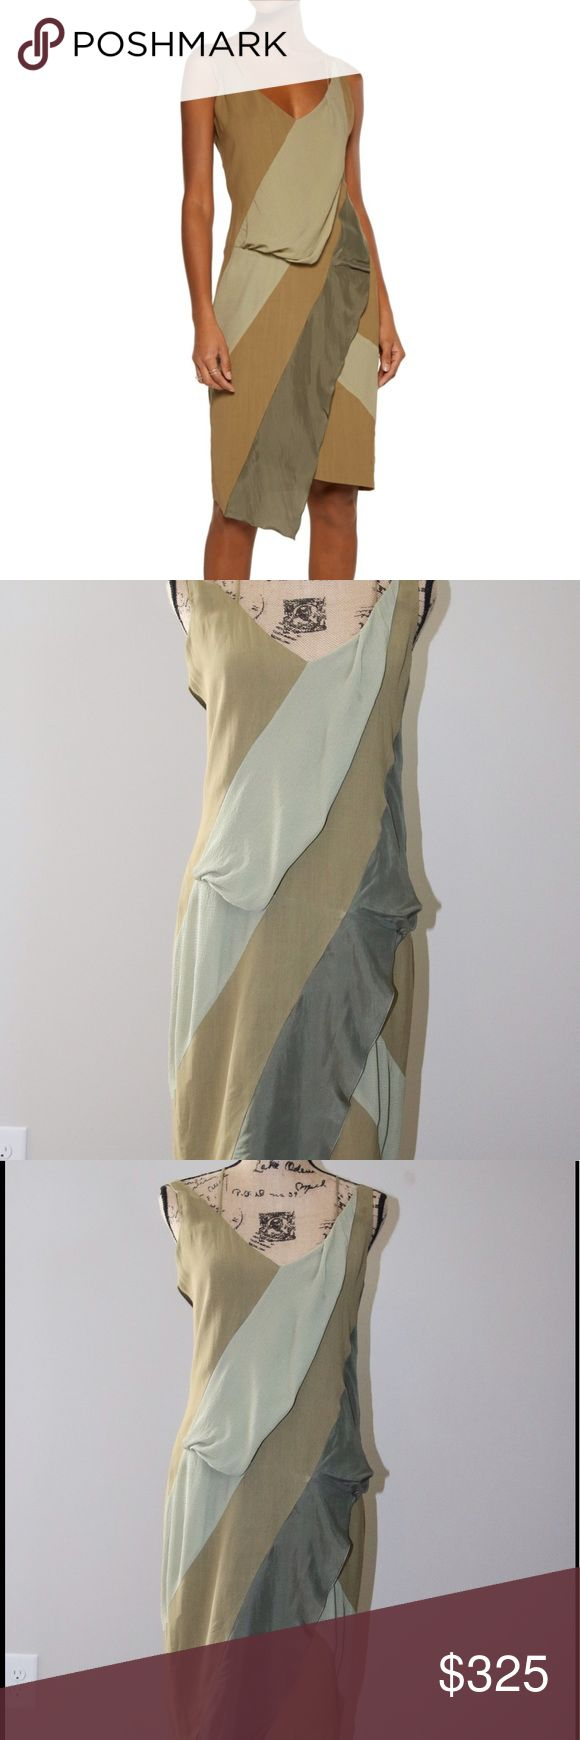 BELSTAFF asymmetric silk/ satin trim dress sz 42 Belstaff sage green , light green, army green,  twill crepe    Crossover shoulder strap  draped bodice   72% viscose  28% ramie 100% silk belstaff Dresses